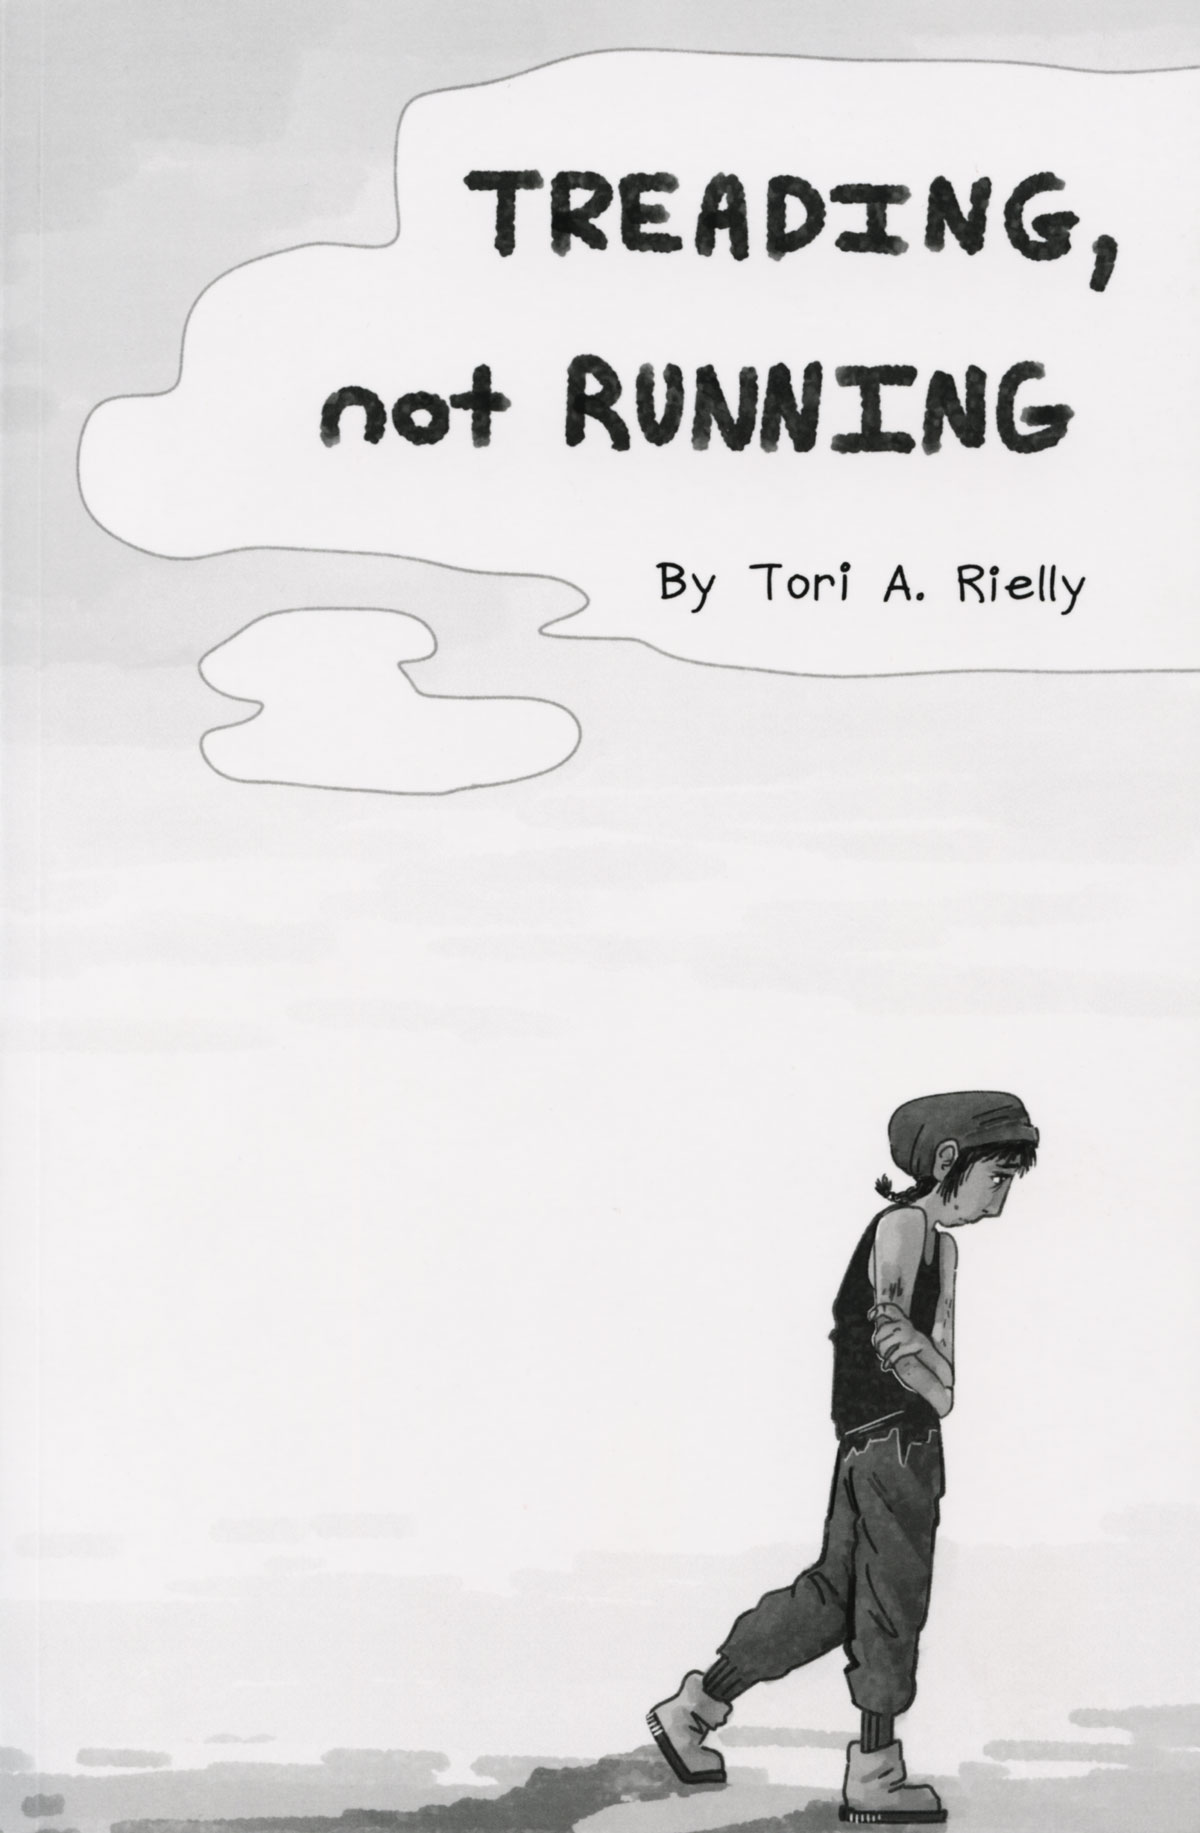 Treading Not Running by Tori A. Rielly